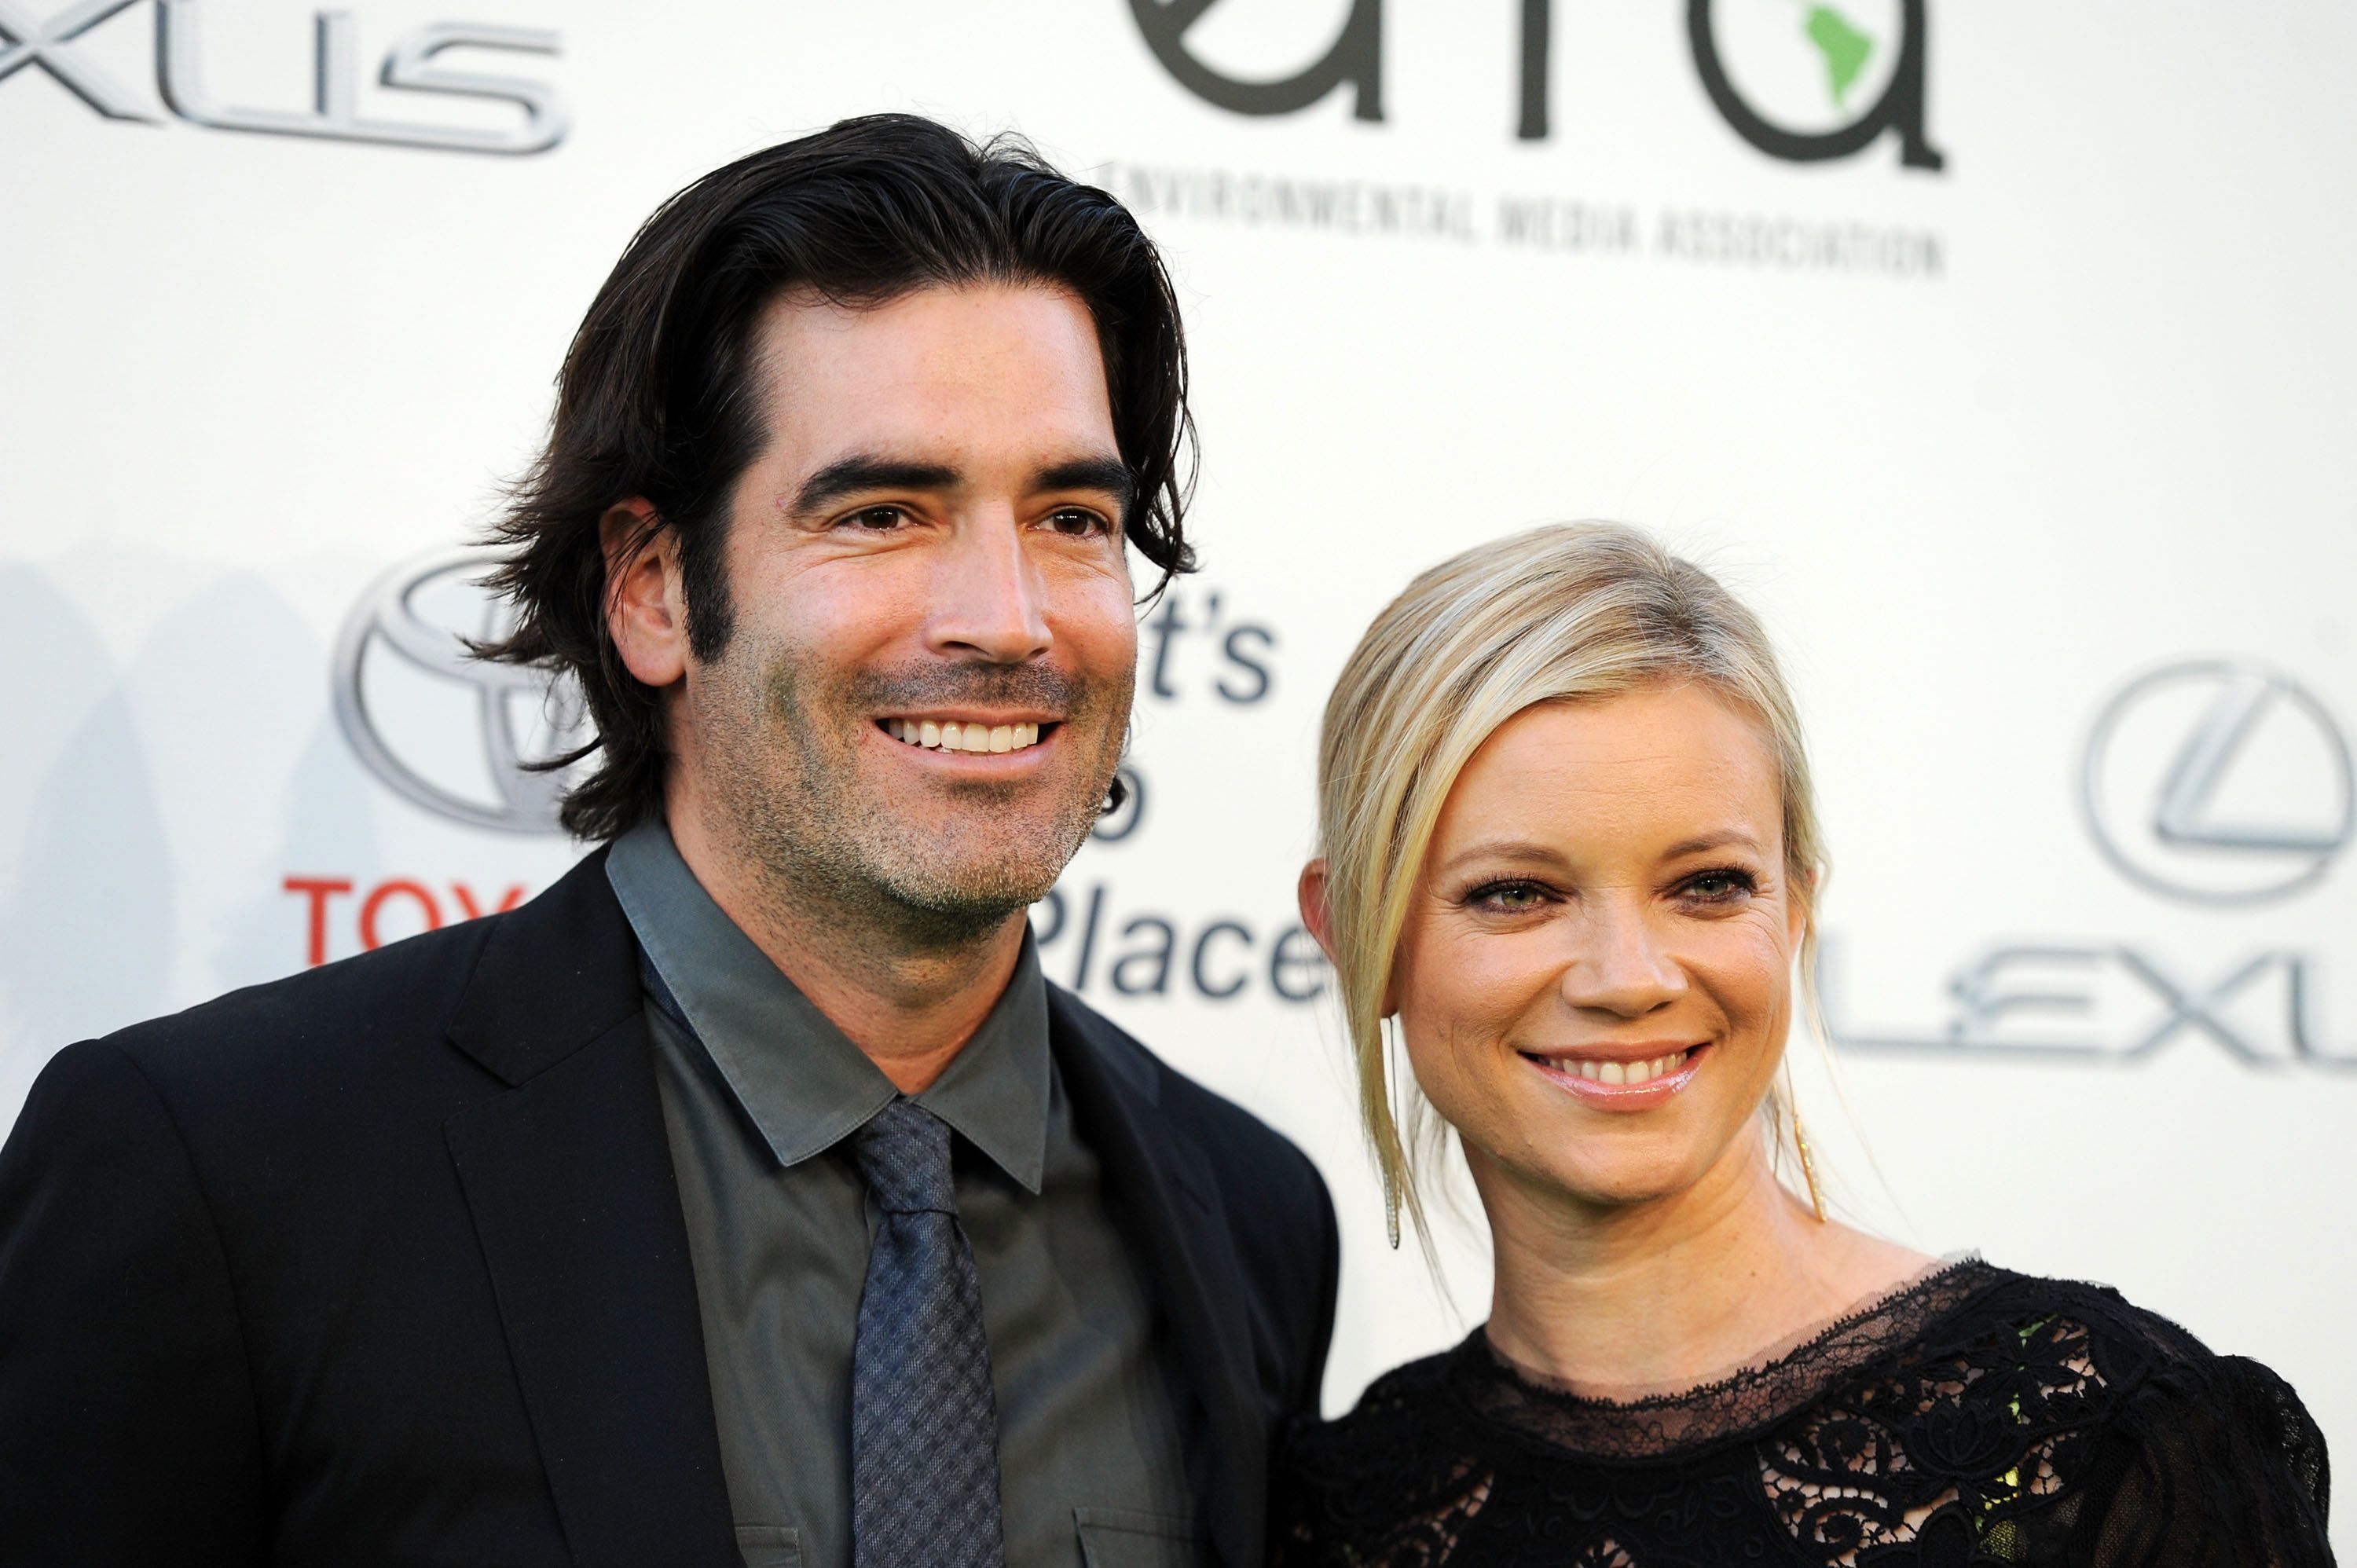 BURBANK, CA - OCTOBER 19:  Television personality Carter Oosterhouse (L) and actress Amy Smart arrive at the 2013 Environmental Media Awards at Warner Bros. Studios on October 19, 2013 in Burbank, California.  (Photo by Amanda Edwards/WireImage)